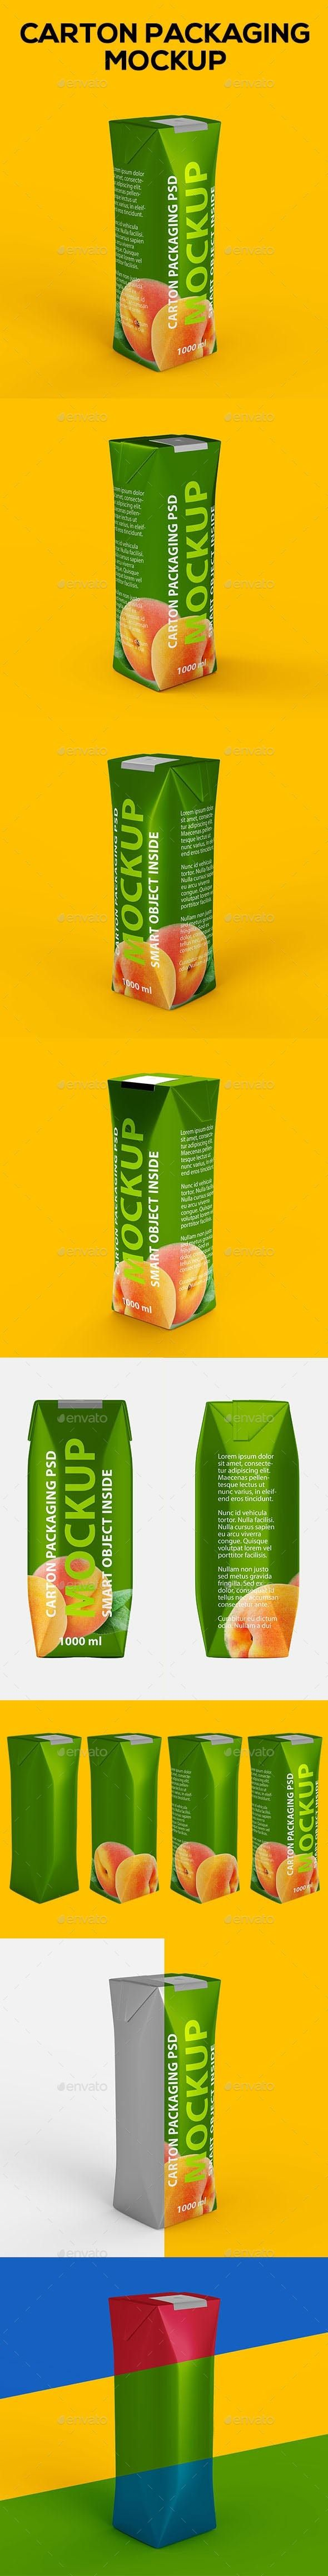 Juice Carton Package #Mockup - Food and Drink #Packaging Download here: https://graphicriver.net/item/juice-carton-package-mockup/20059727?ref=alena994